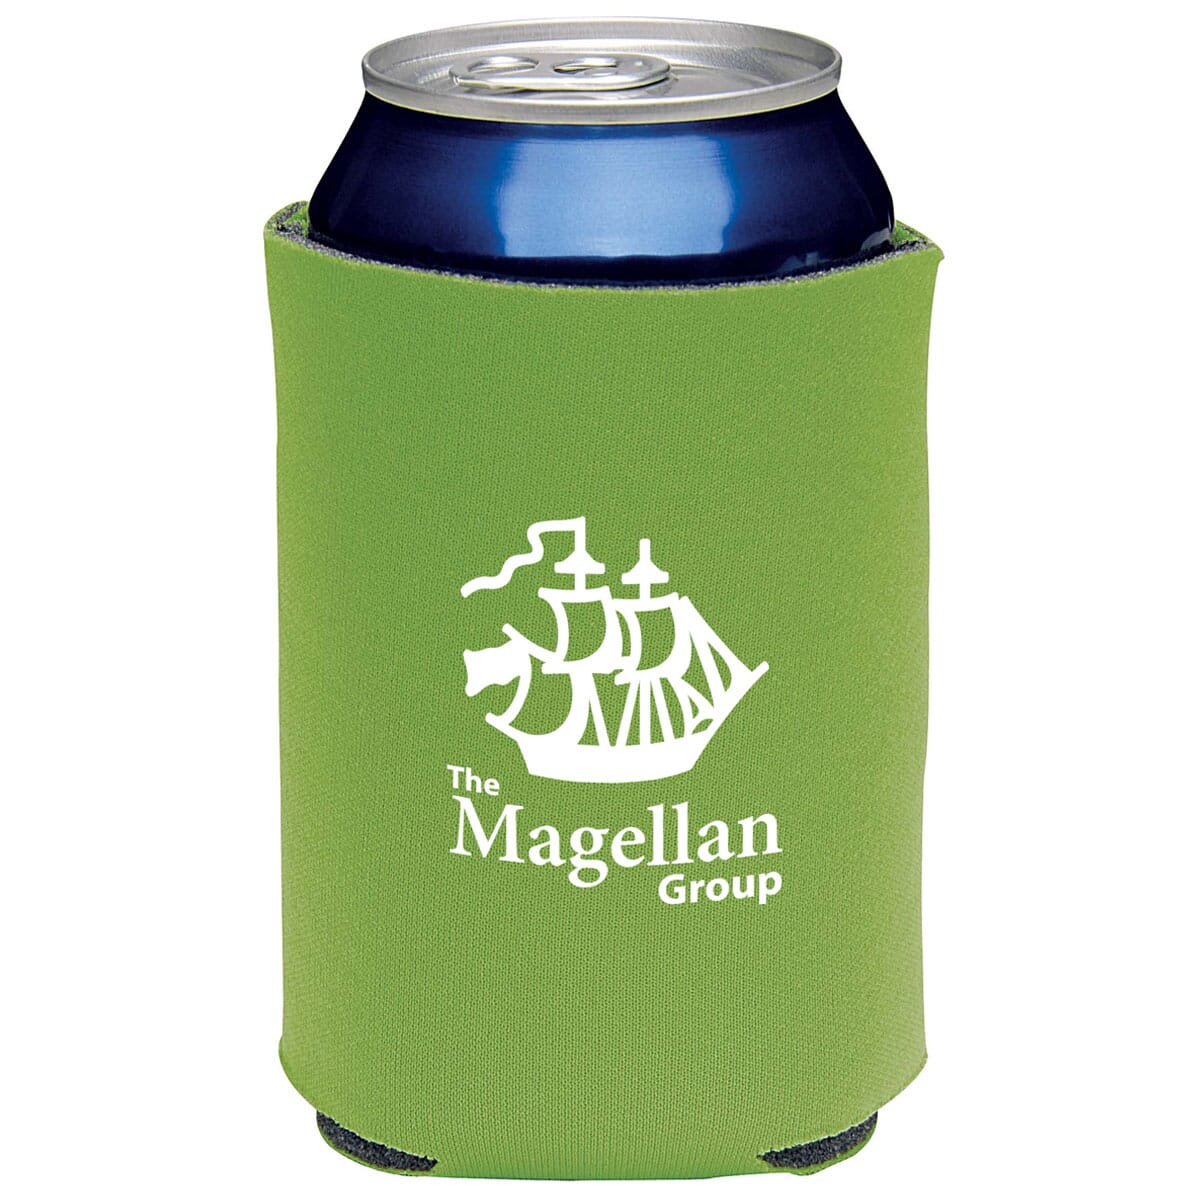 Bright recycled koozie